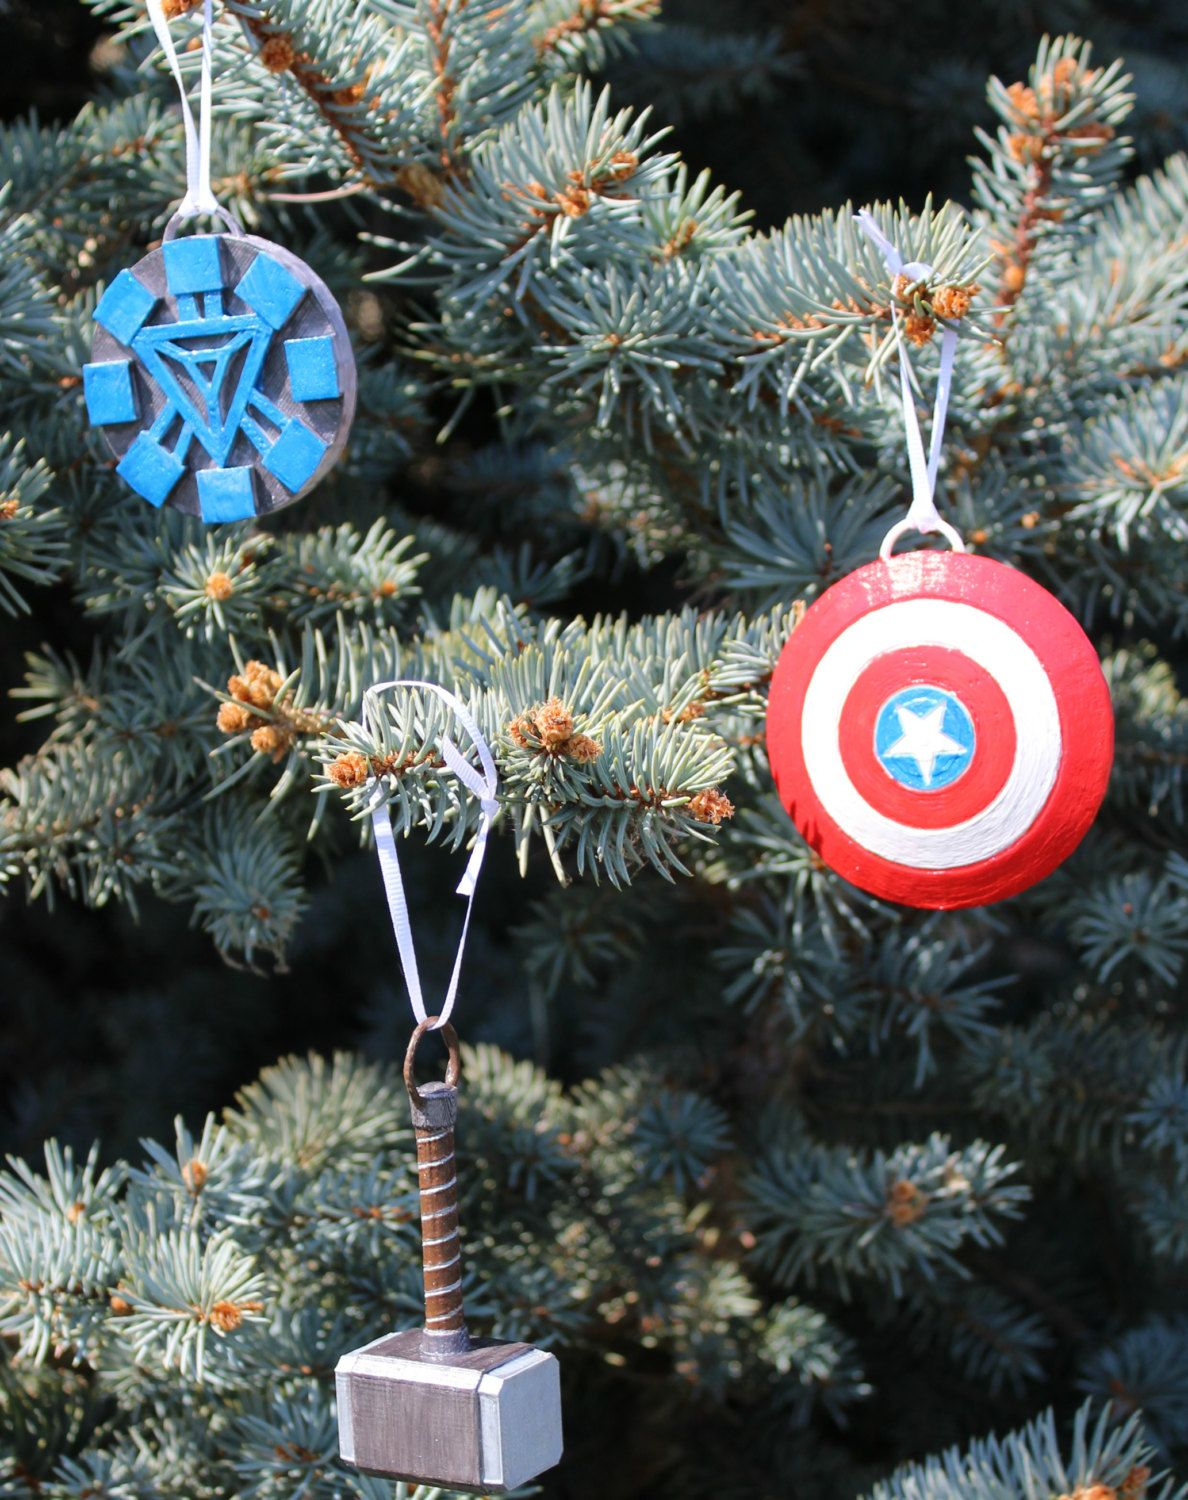 Marvel Christmas Or Everyday Ornaments Thor Ironman Captain America Set Of 3 By Handmaidscrafts On Etsy In 2020 Christmas Decorations Christmas Gift Toppers